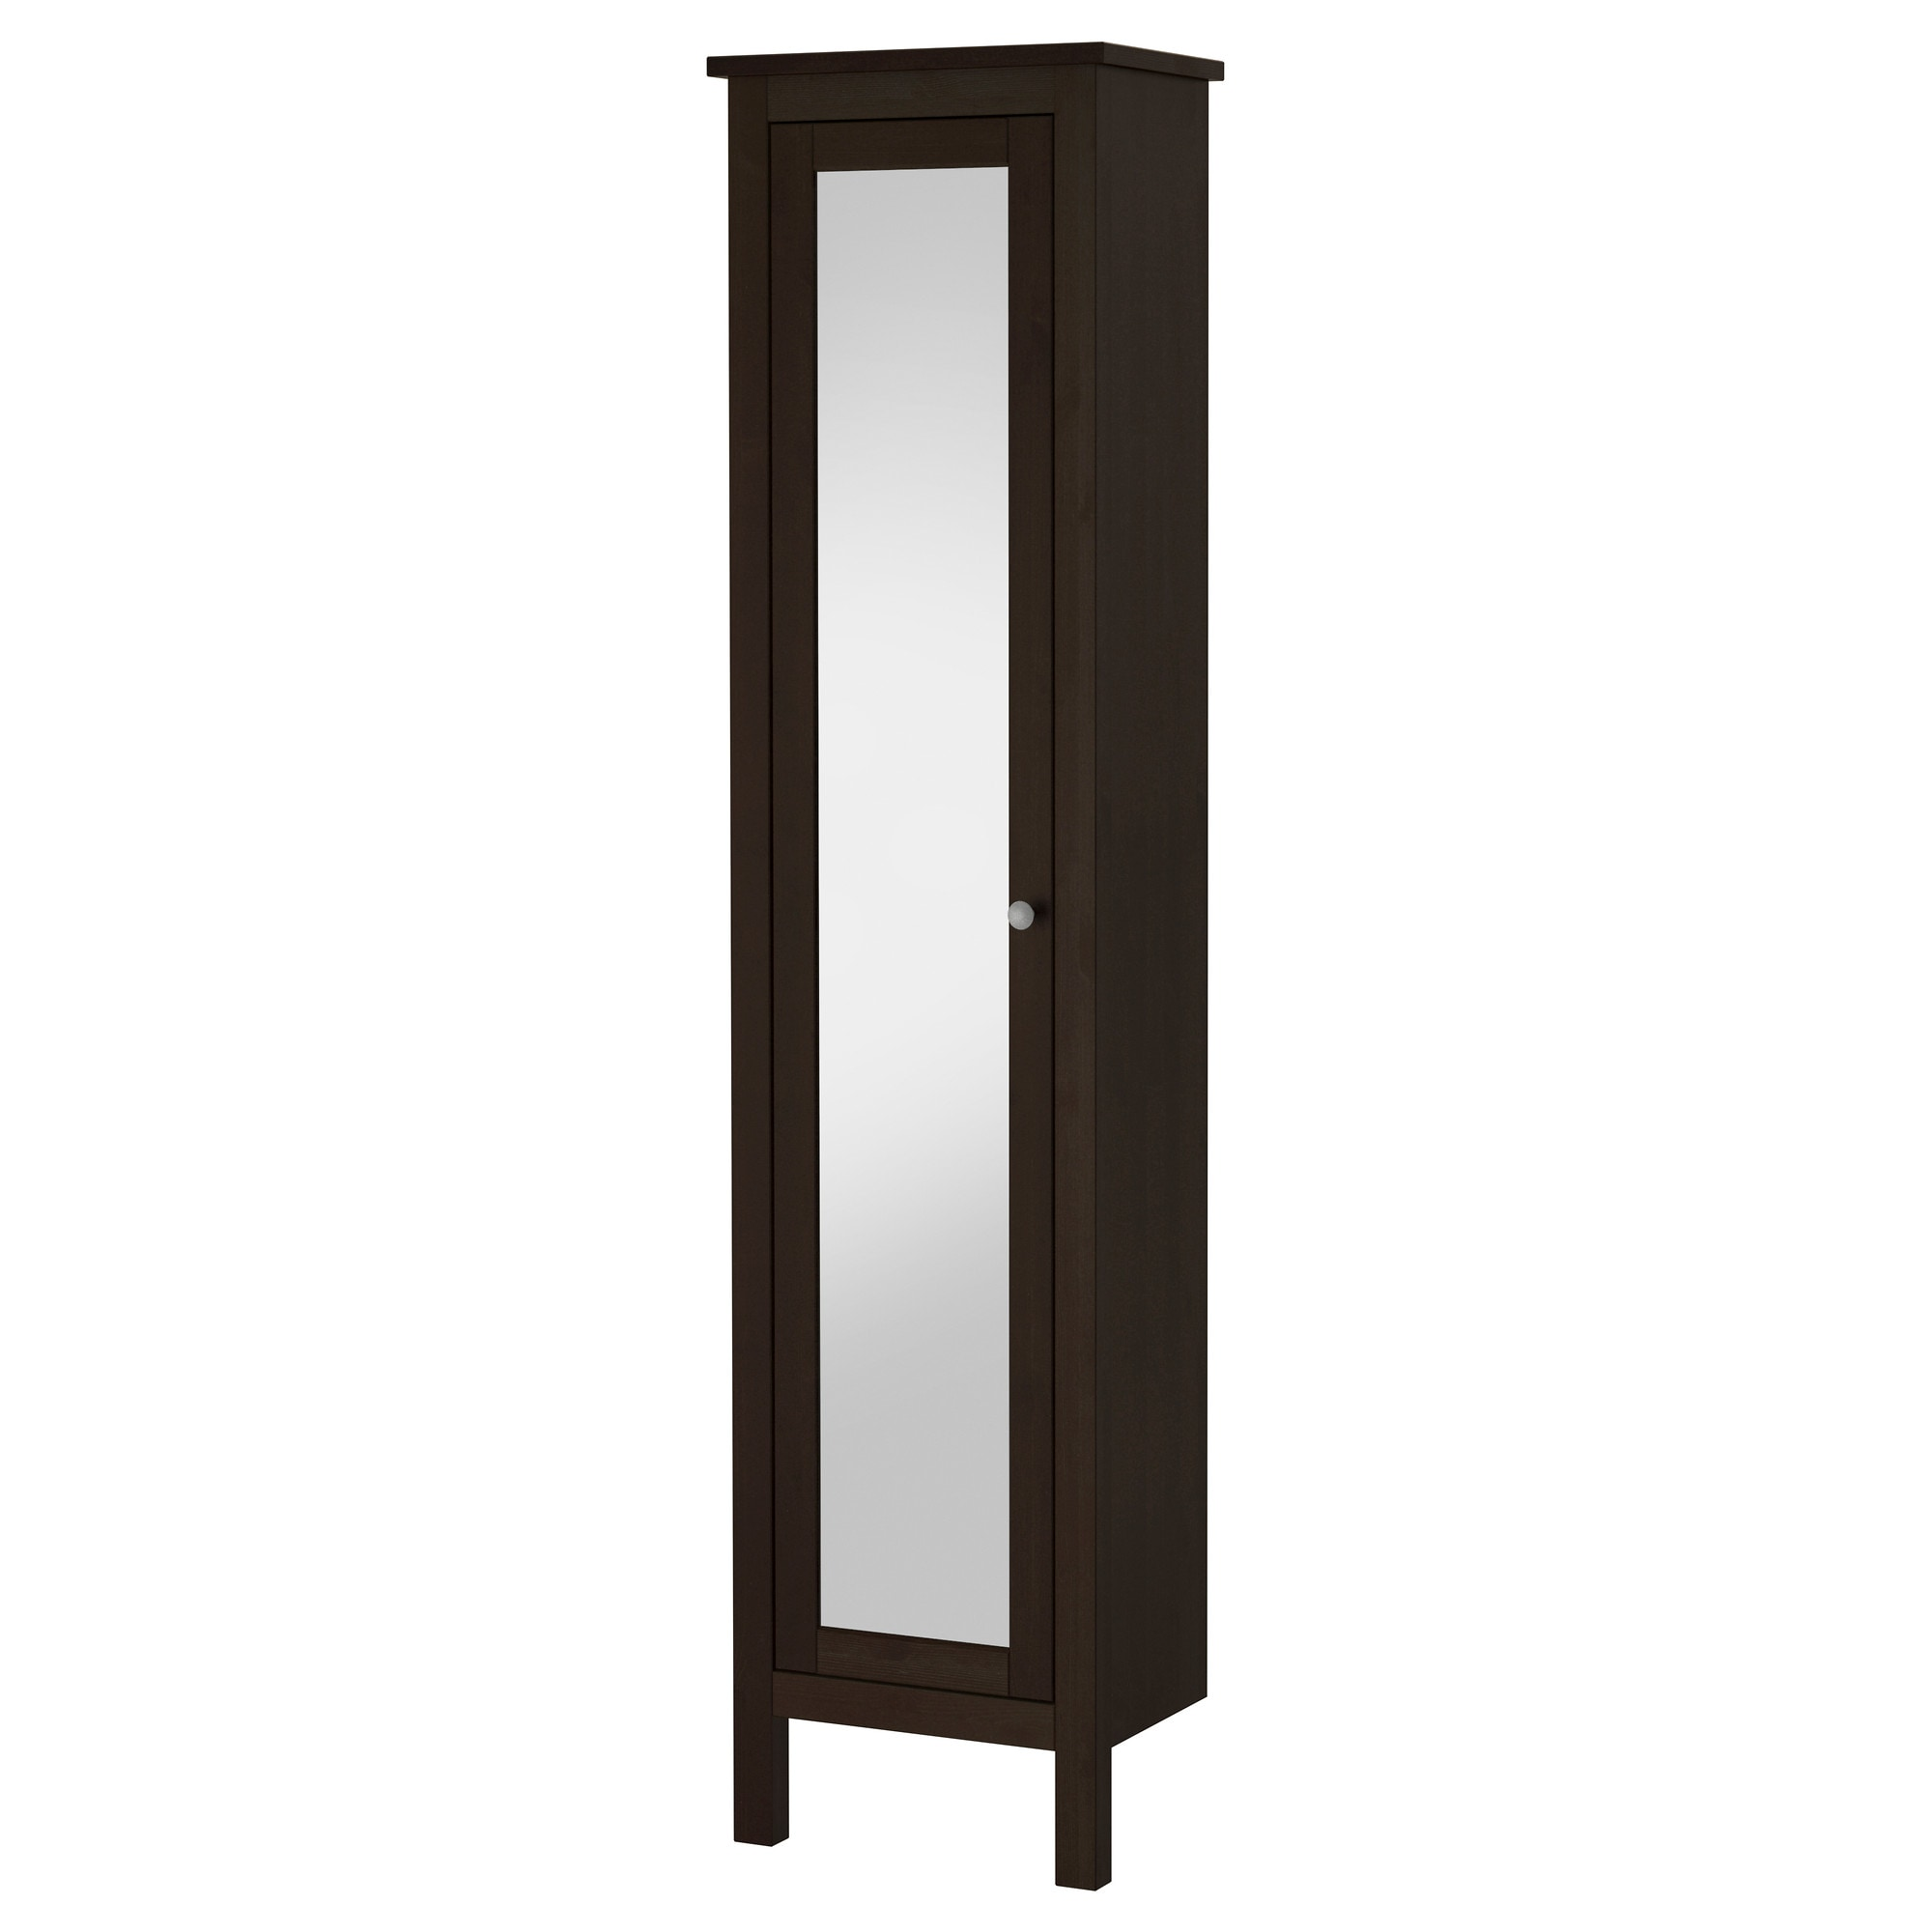 HEMNES High Cabinet With Mirror Door